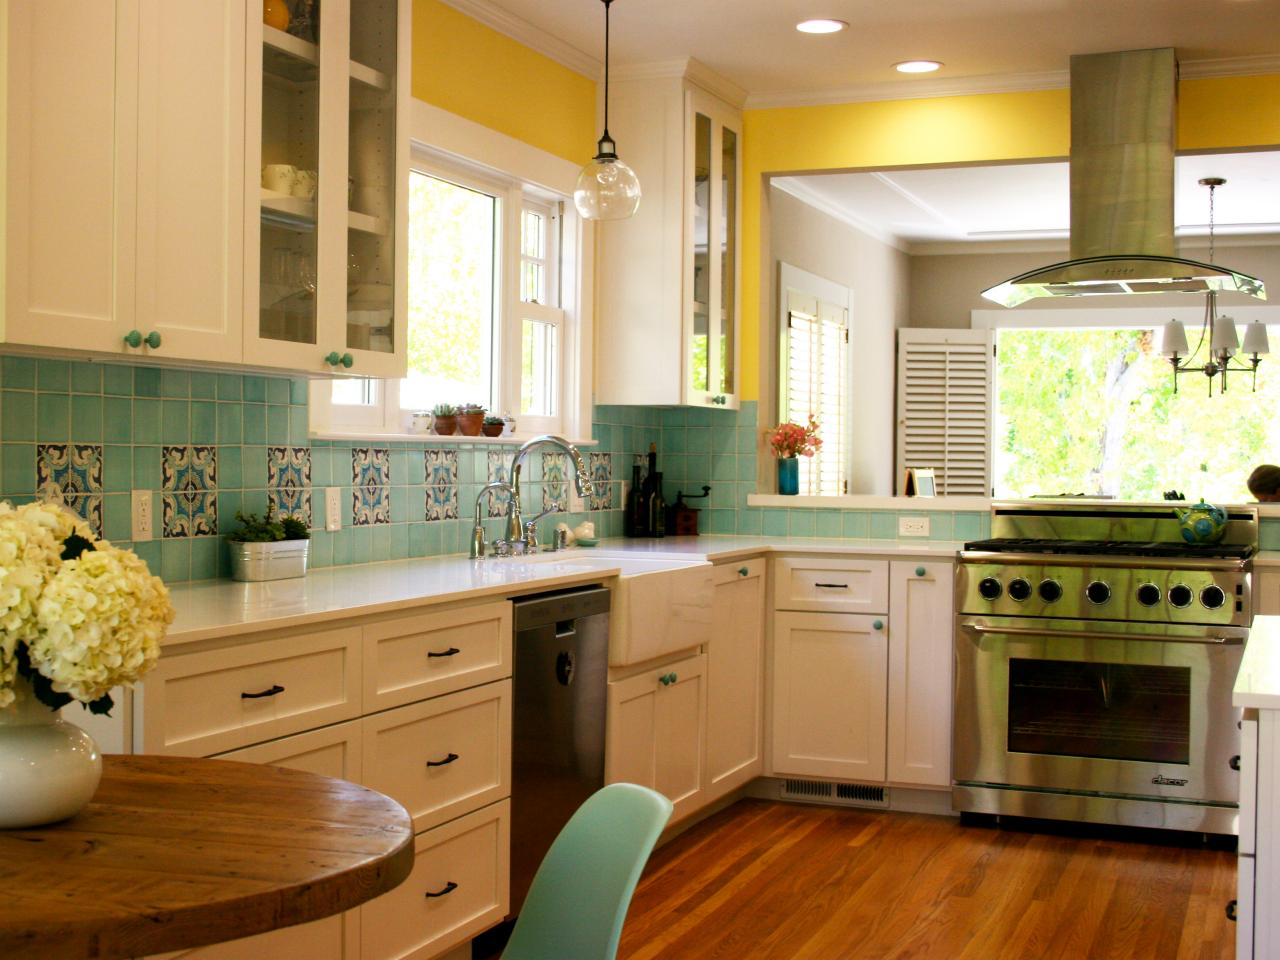 Photos hgtv What color cabinets go with yellow walls